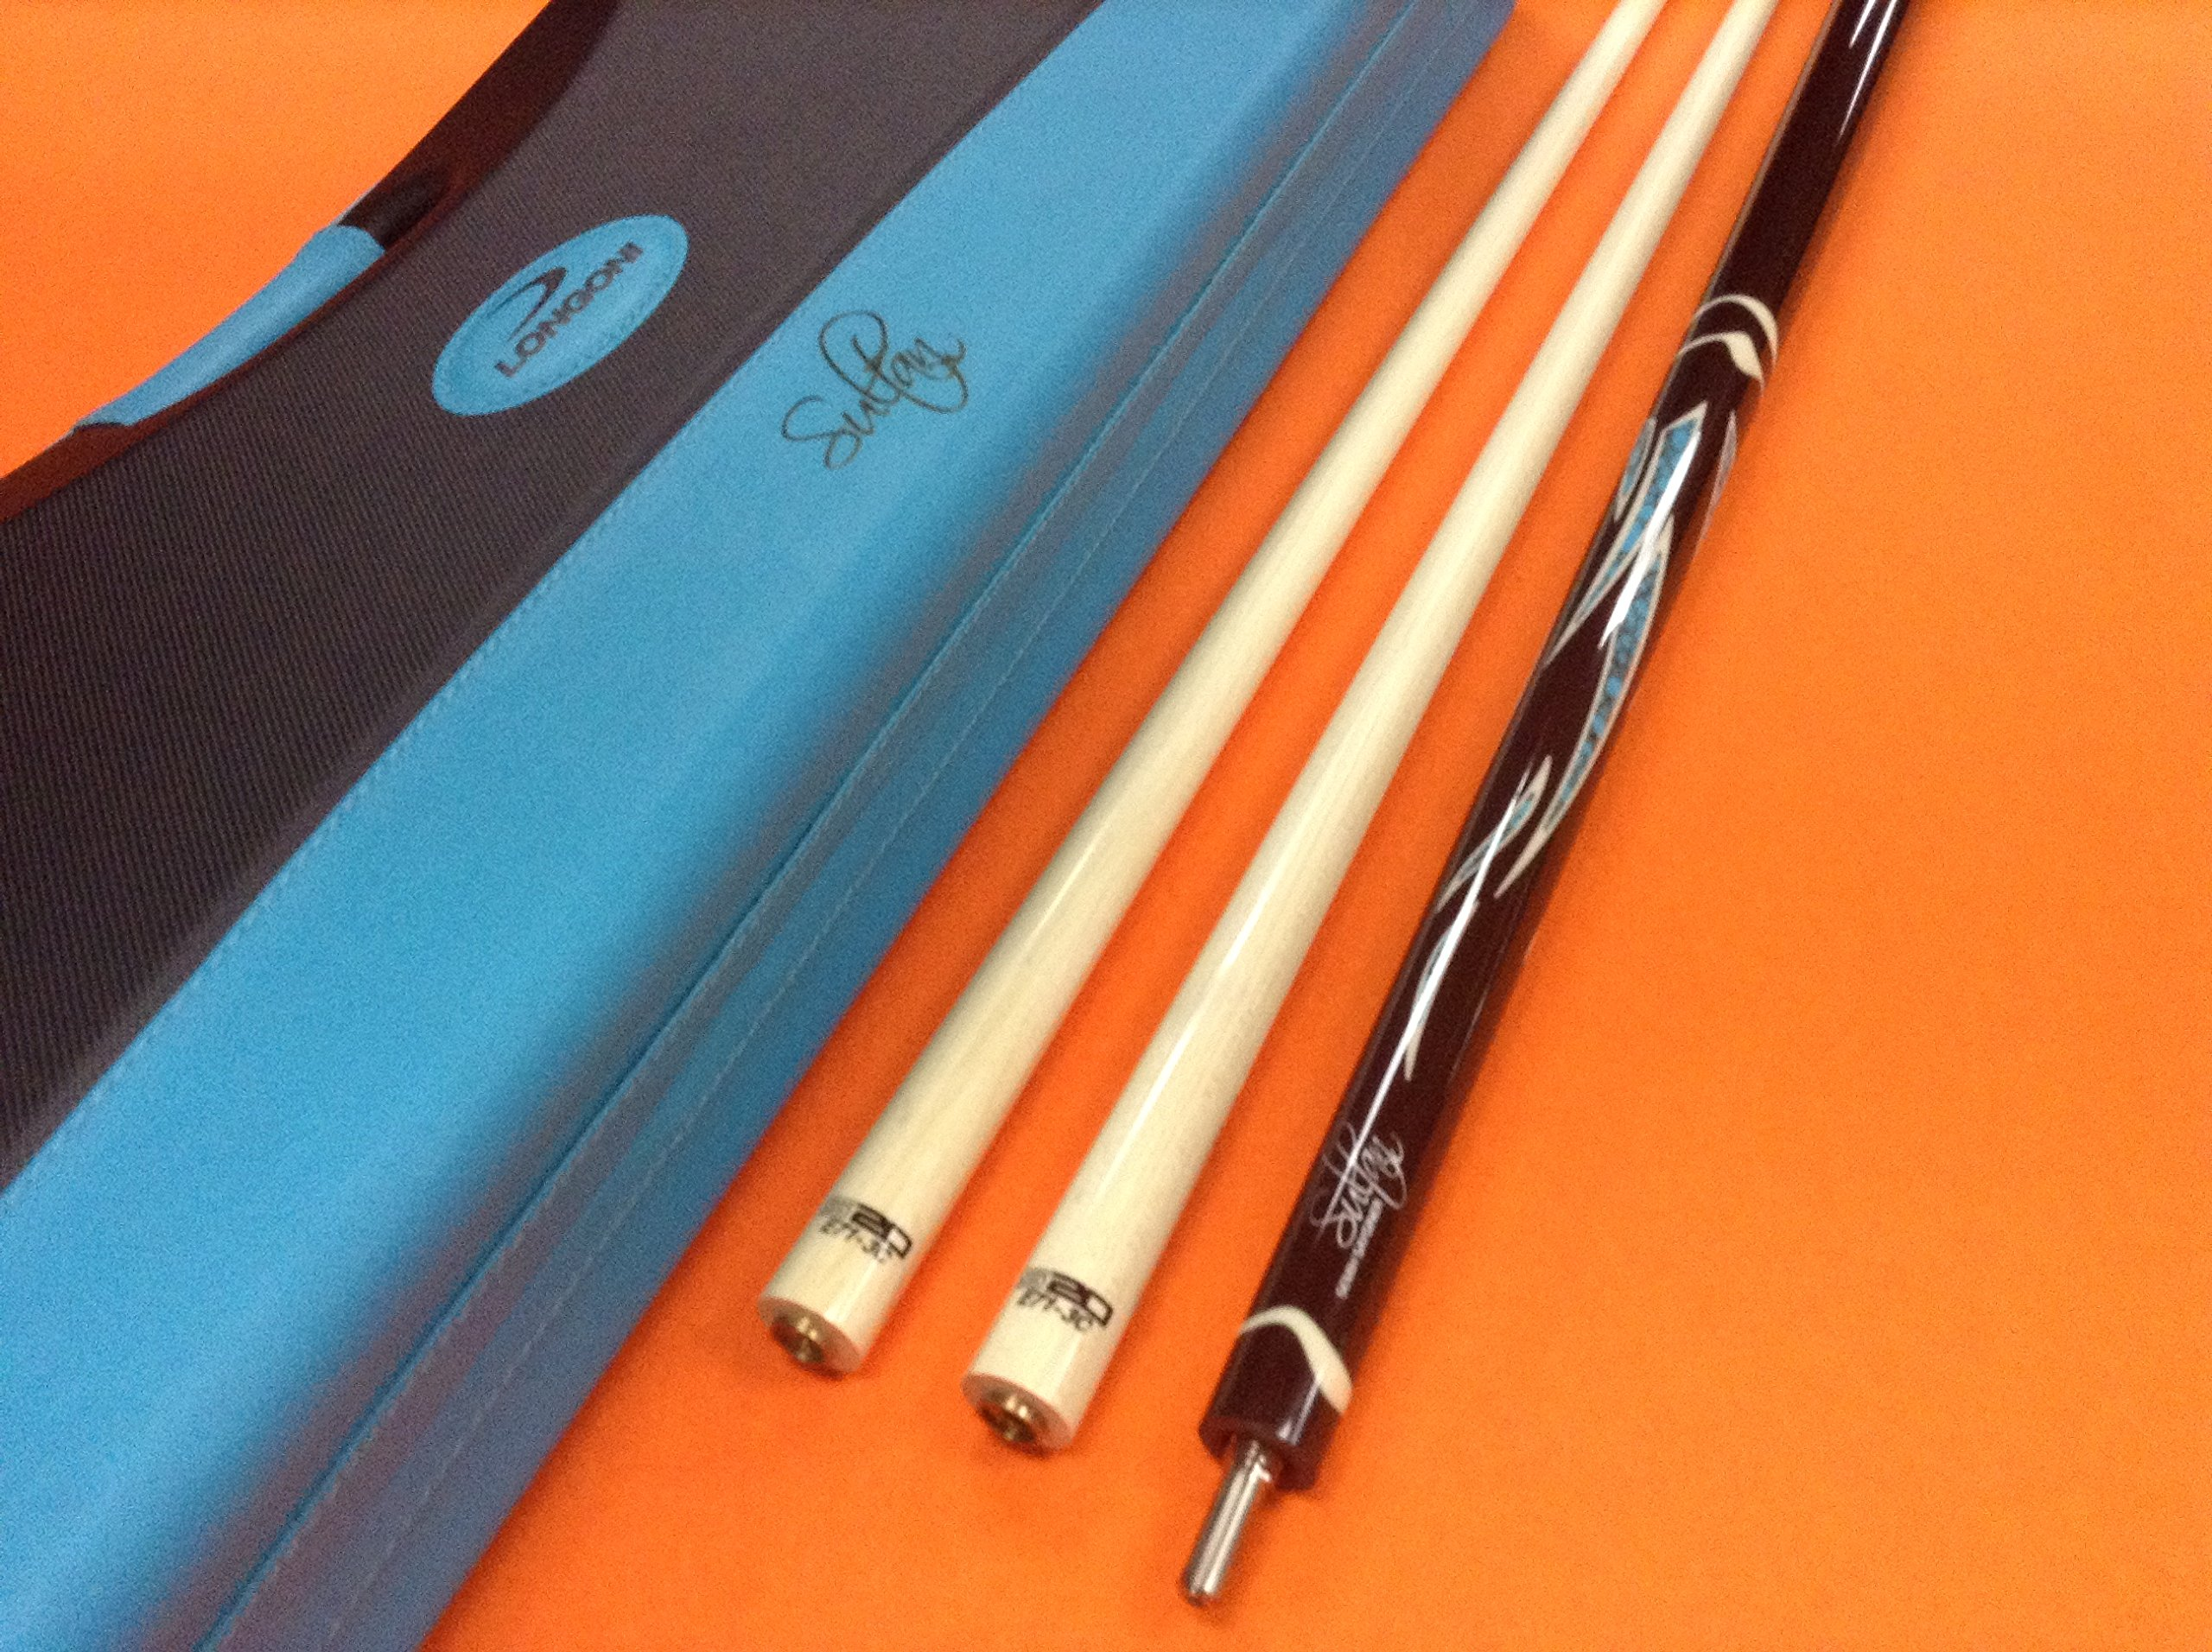 LONGONI CAROM CUE SULTAN WITH S20 SHAFTS & CASE